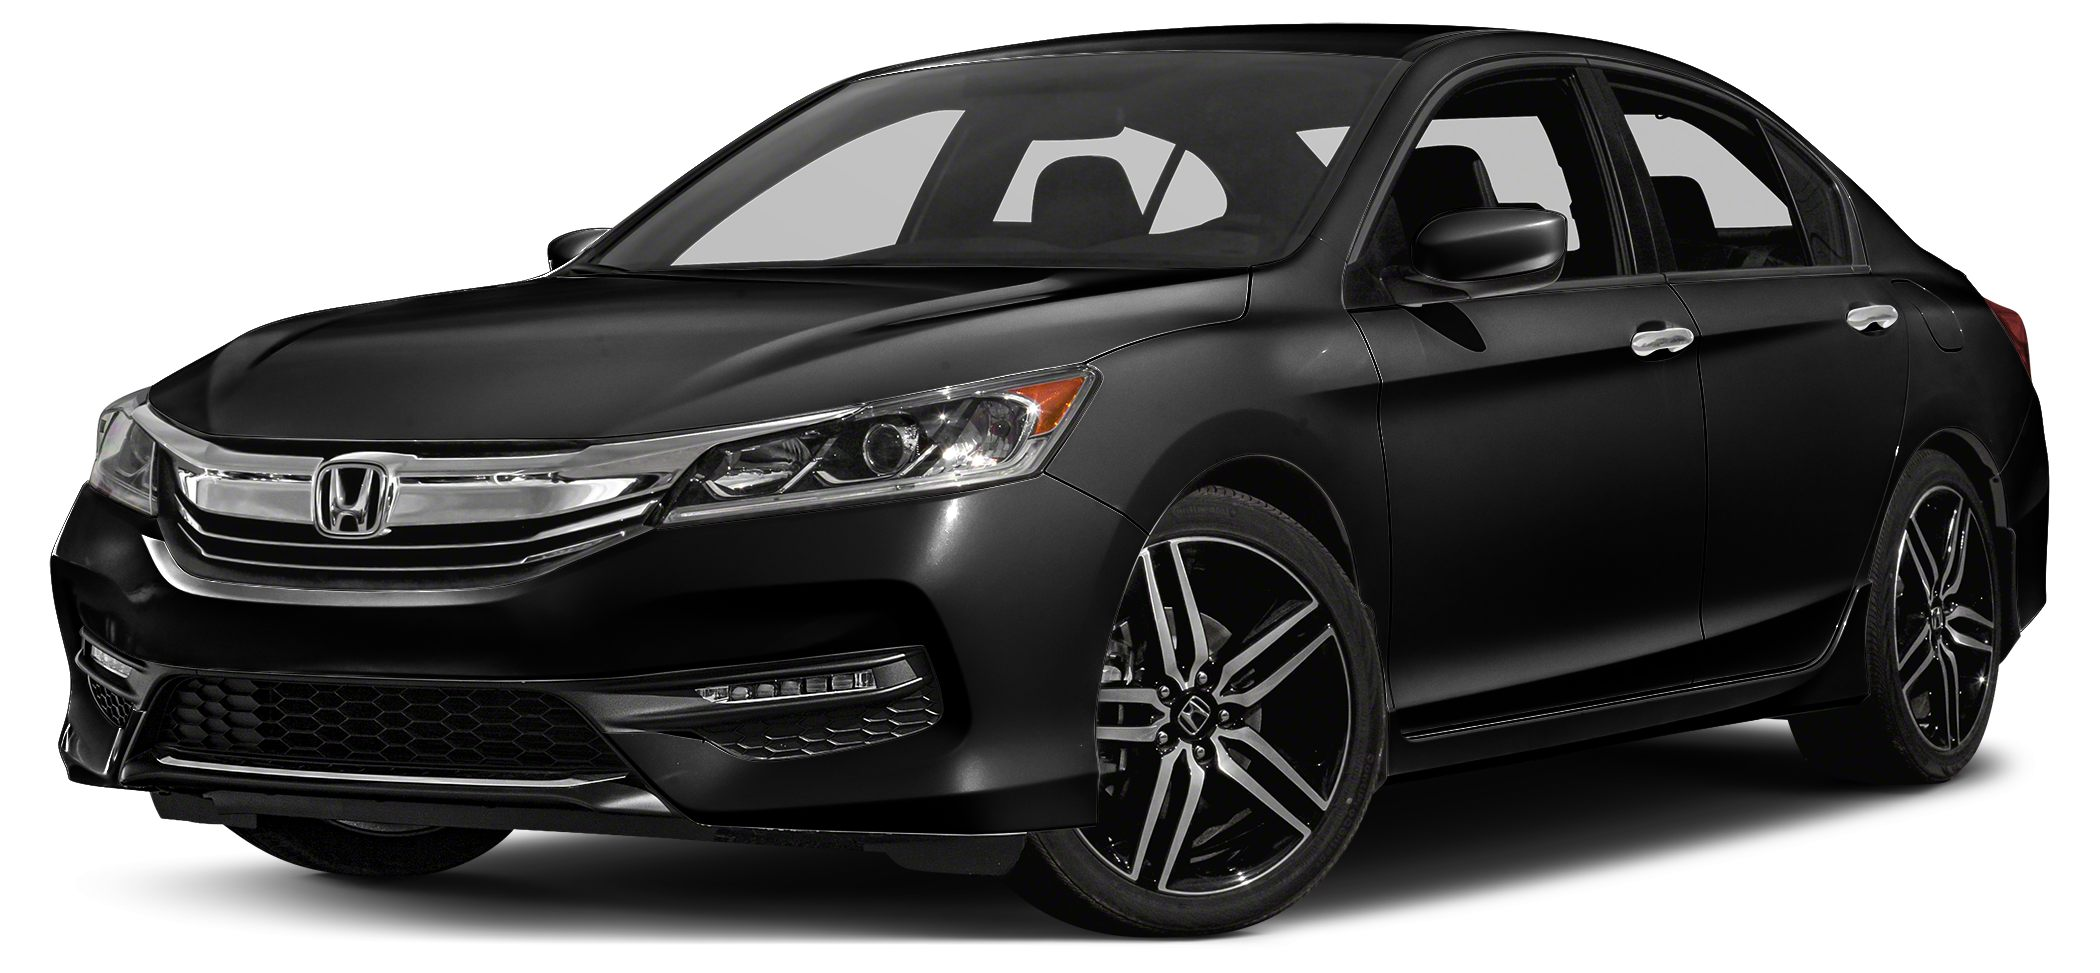 2017 Honda Accord Sport PRICED TO MOVE 1300 below Kelley Blue Book EPA 34 MPG Hwy26 MPG City